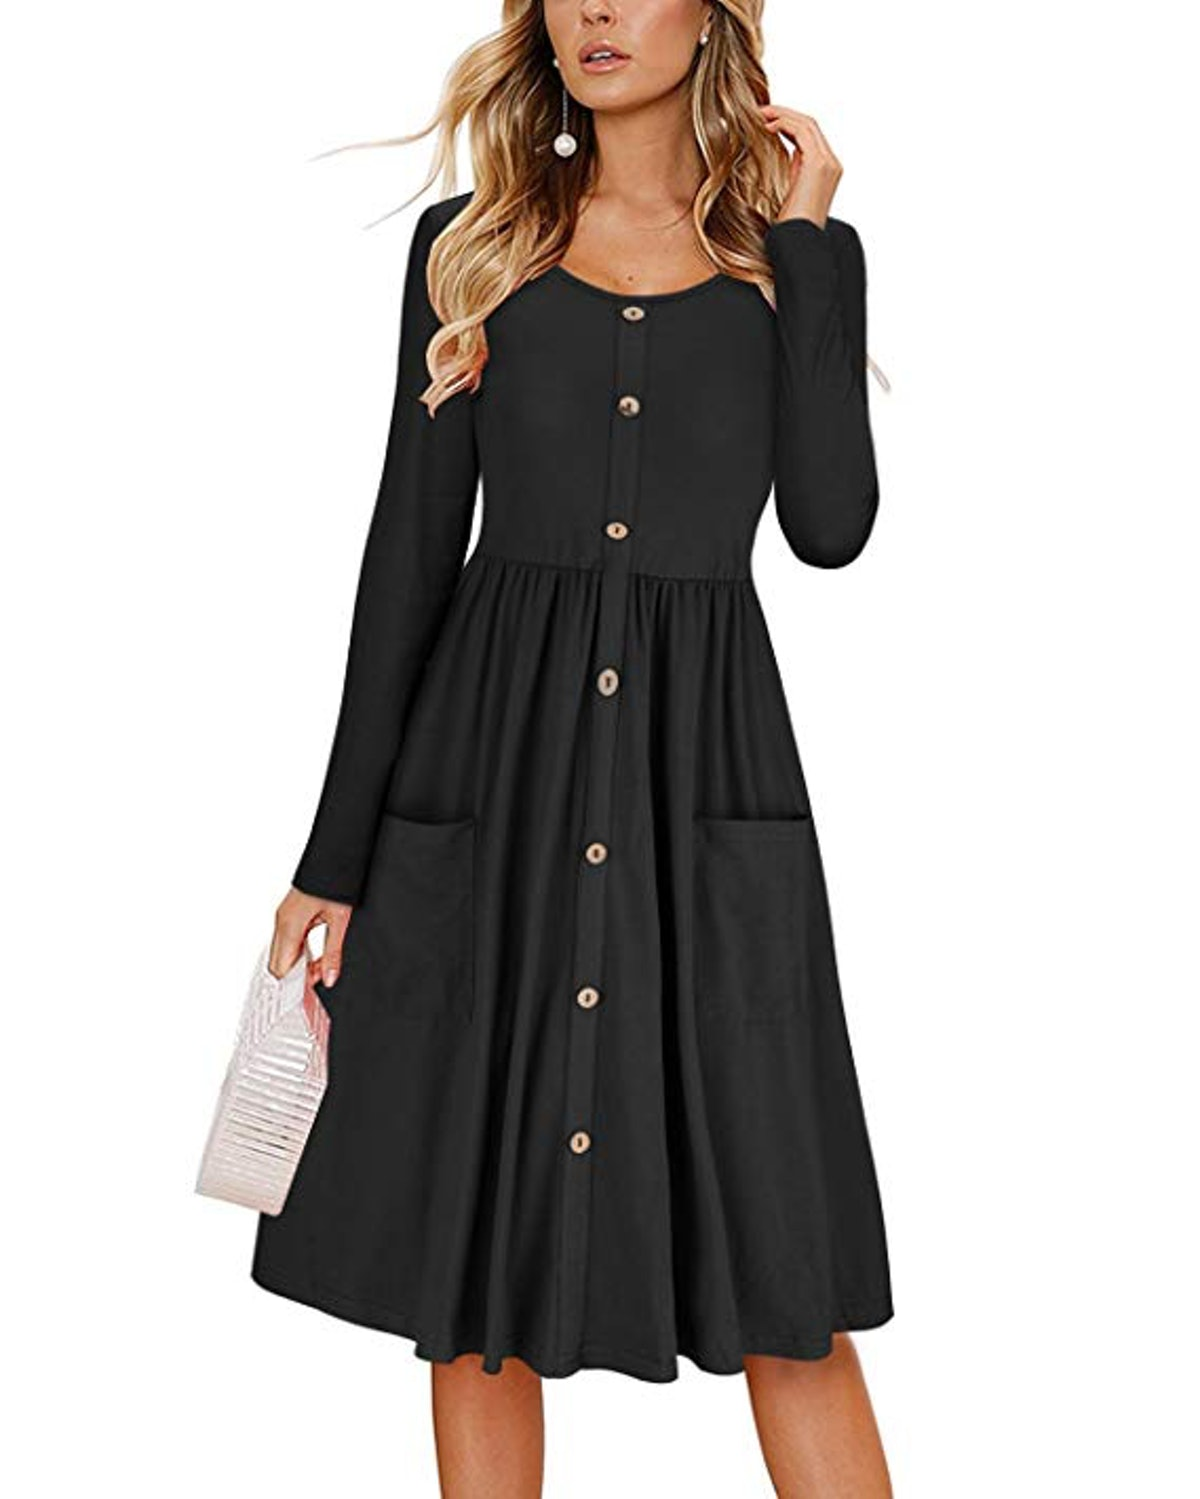 KILIG Women's Button-Down Dress With Pockets